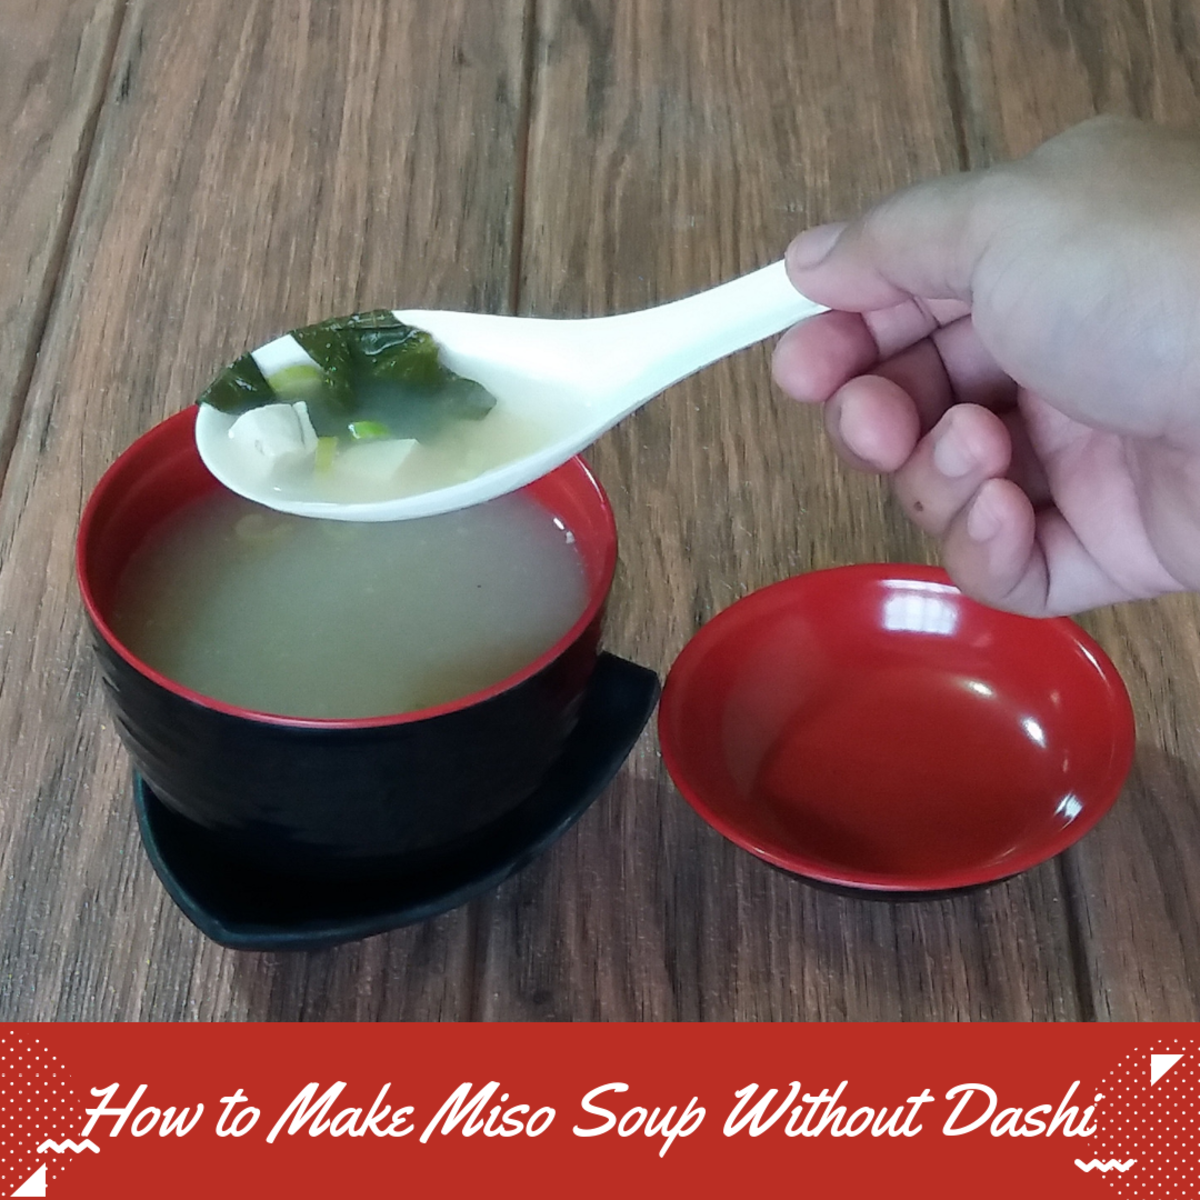 Learn how to make miso soup without dashi